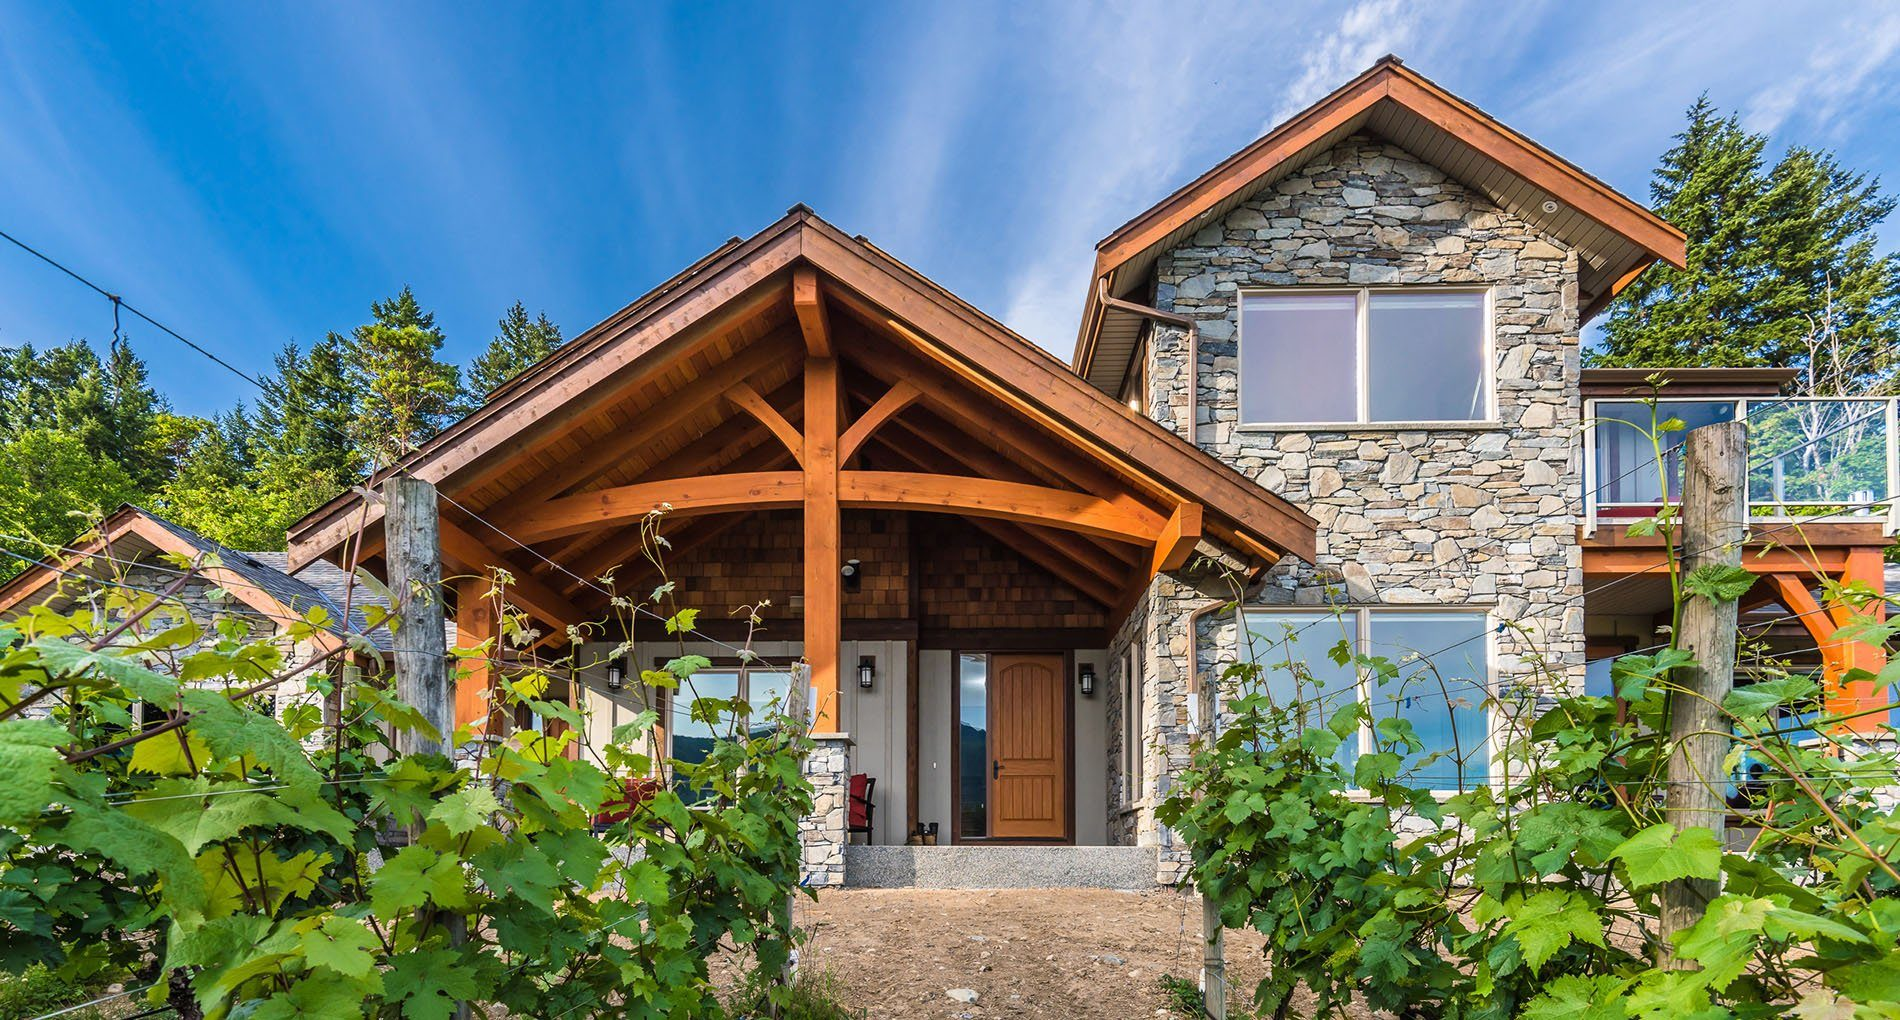 Custom Home Newwestminster Chateauwolff2534 Slider11